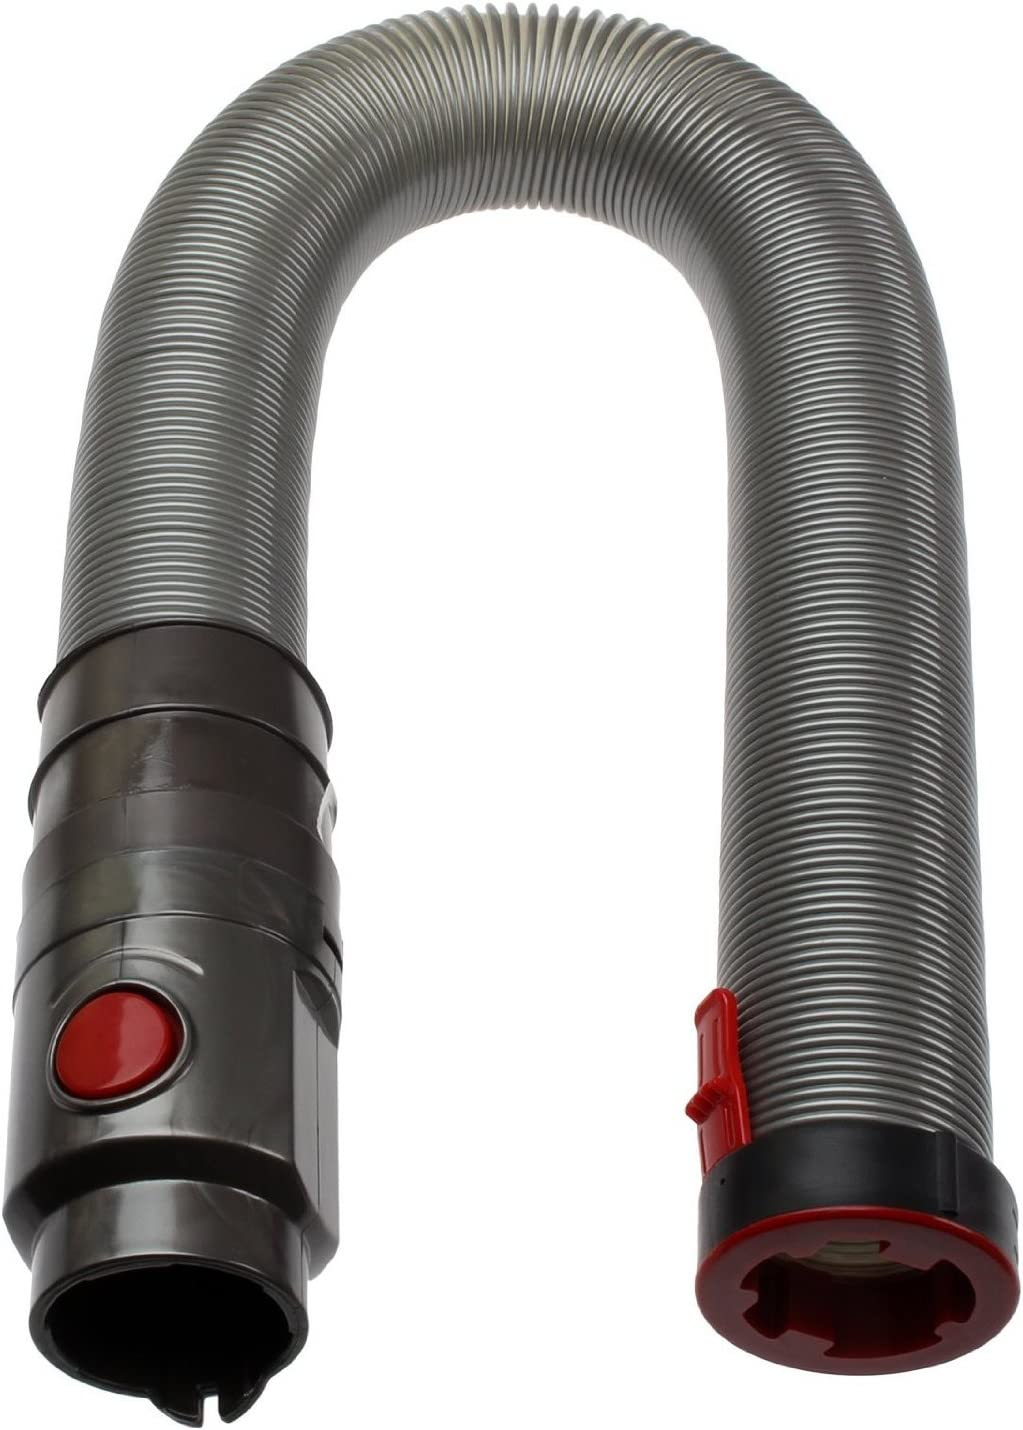 First4Spares Stretch Hose Attachment for Dyson DC65 DC-65 Upright Vacuum Cleaners Grey/Red